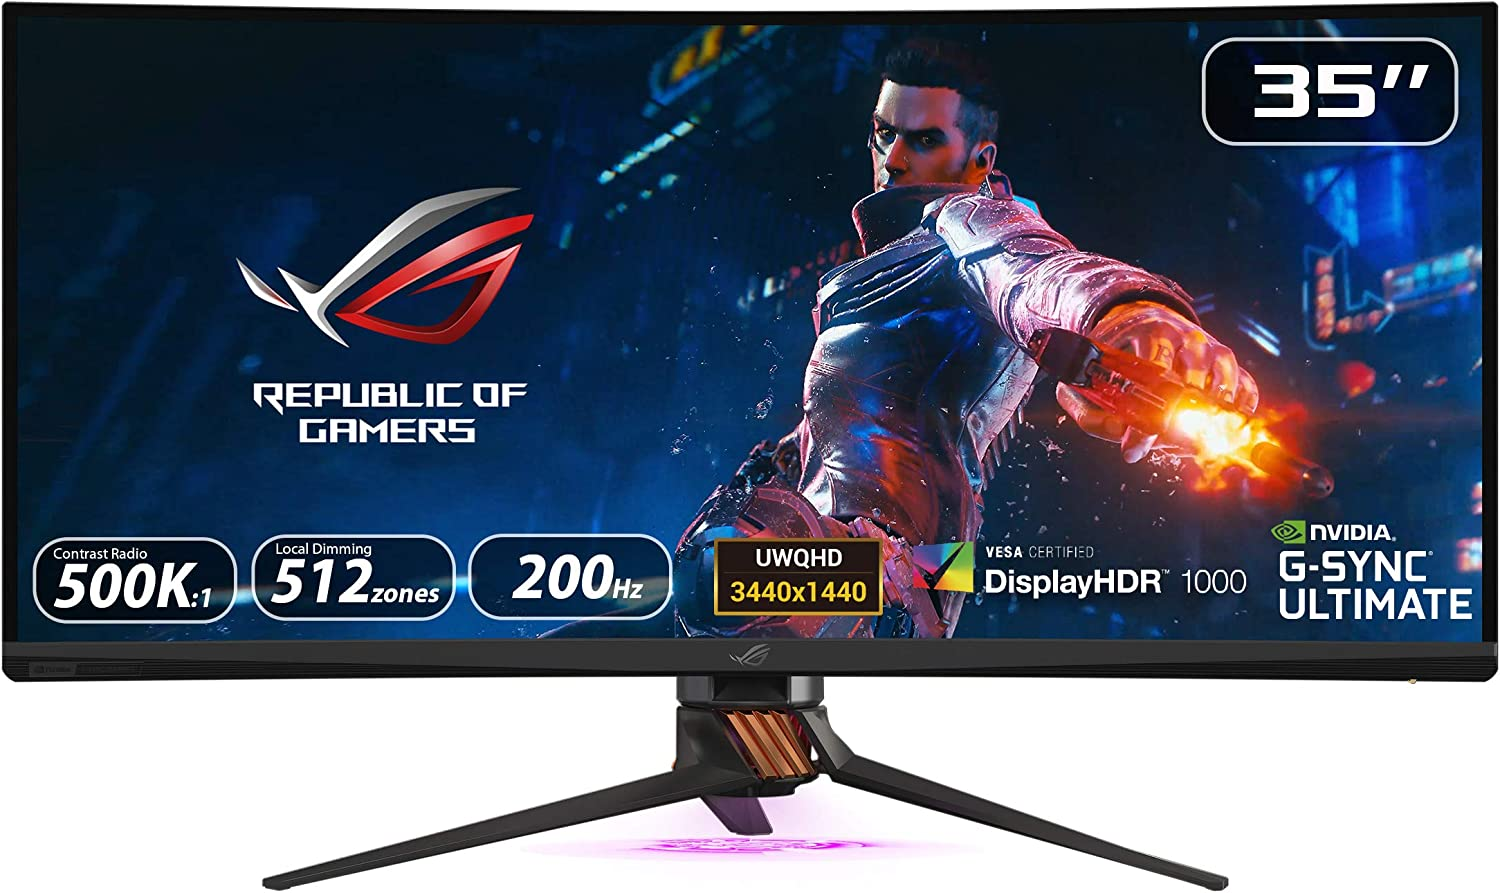 """Asus Rog Swift PG35VQ 35"""" Curved HDR Gaming Monitor 200Hz (3440 X 1440) 2ms G-Sync Ultimate Eye Care DisplayPort HDMI USB Aura Sync HDR10 Display HDR 1000"""